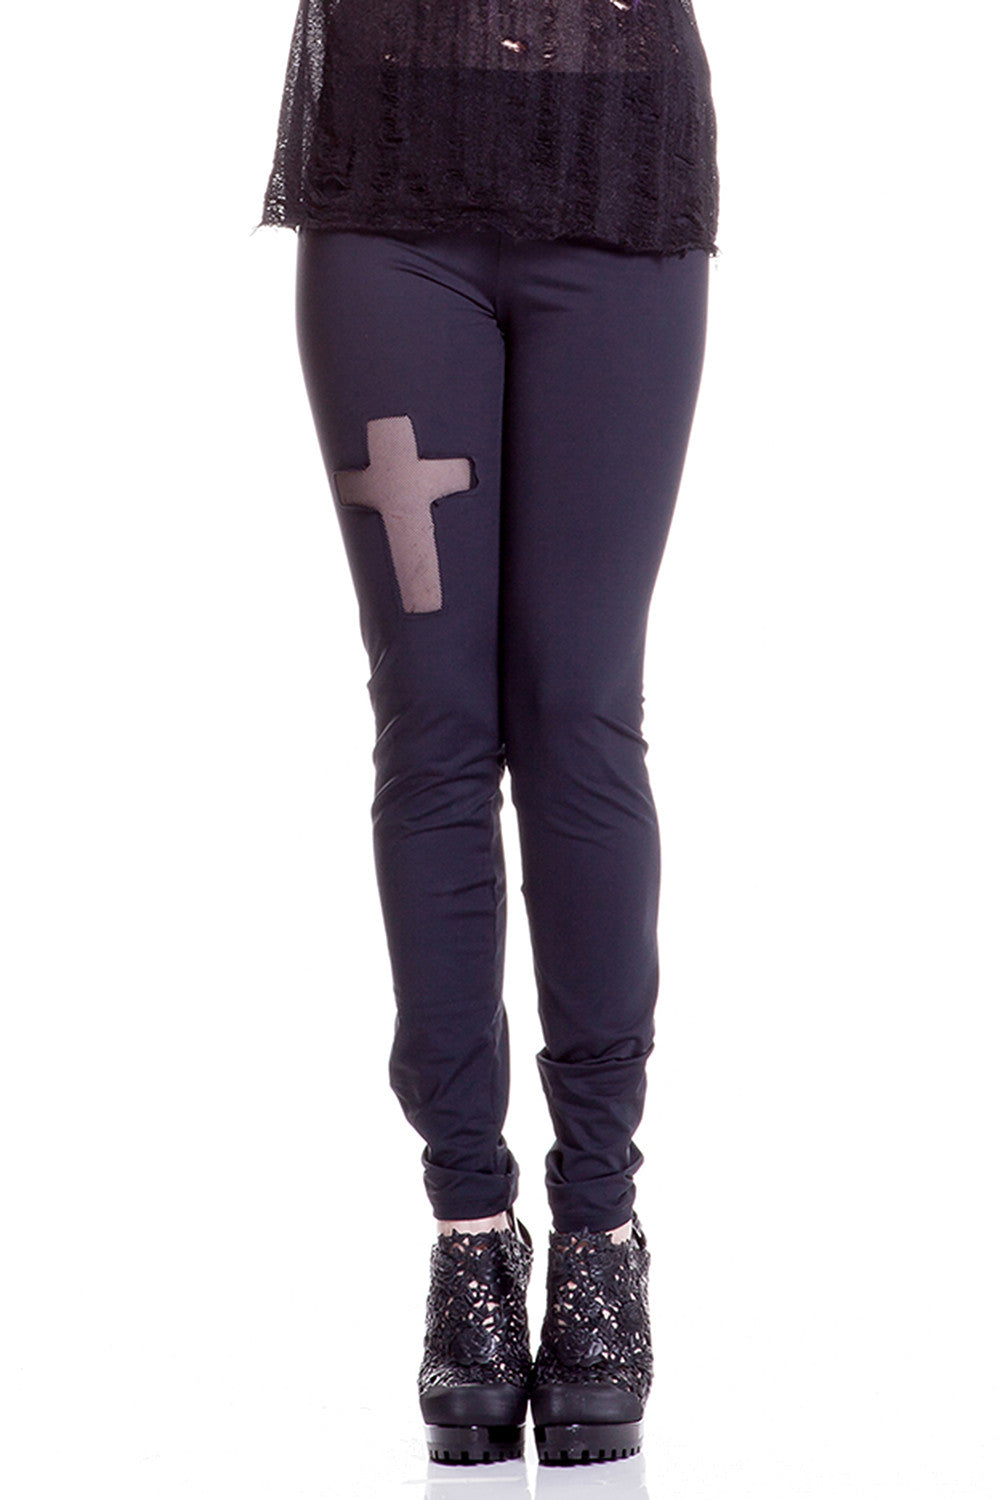 Legging Dreadful - hauteXtreme moda alternativa